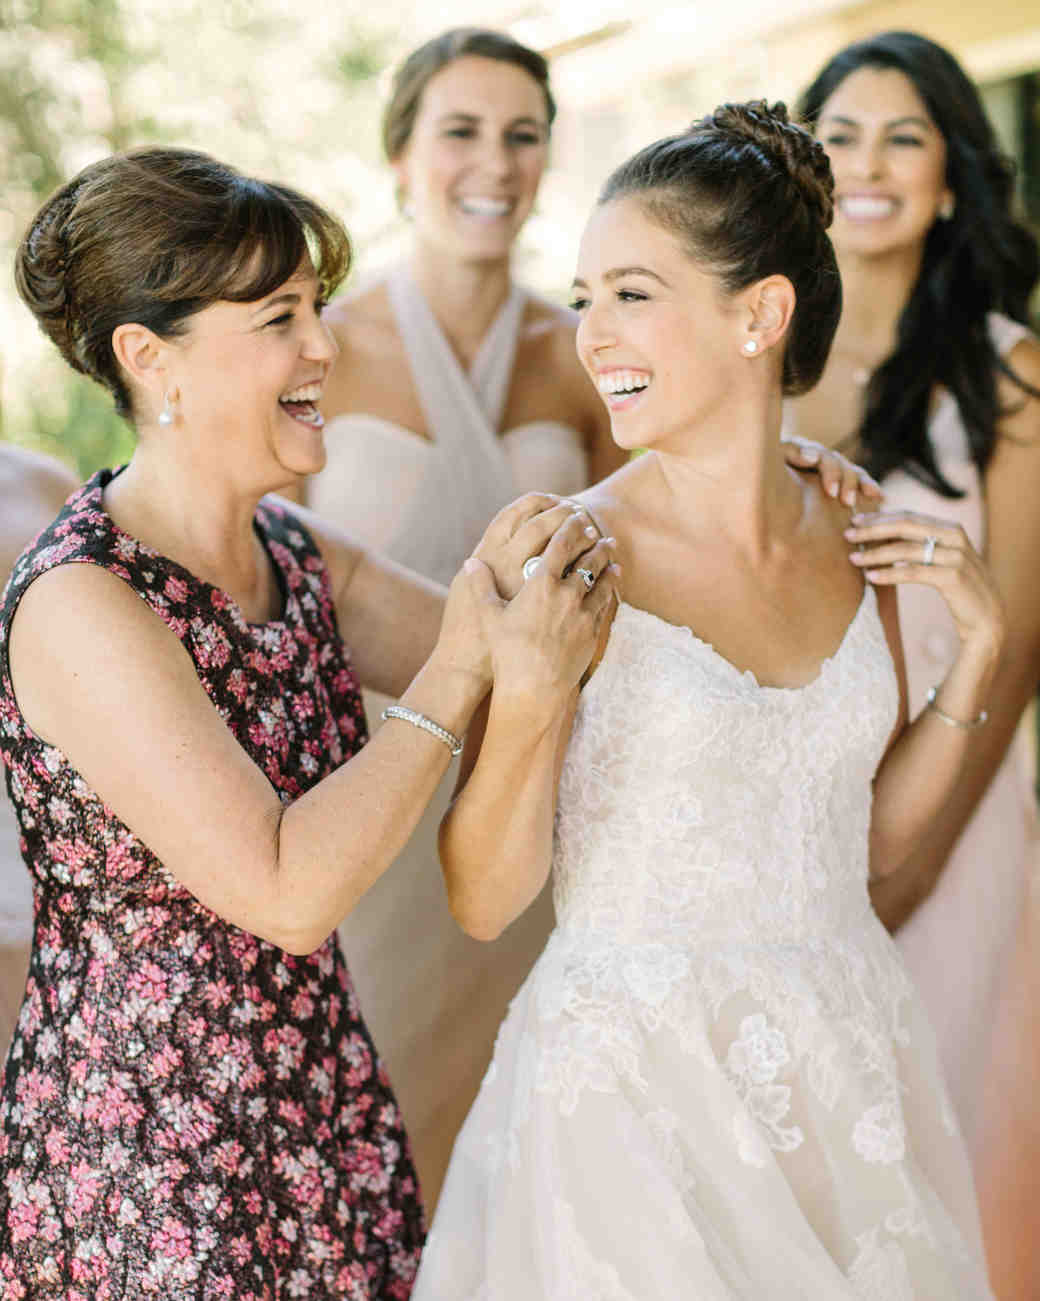 A Mother Holding Her Daughter's Shoulders on Her Wedding Day